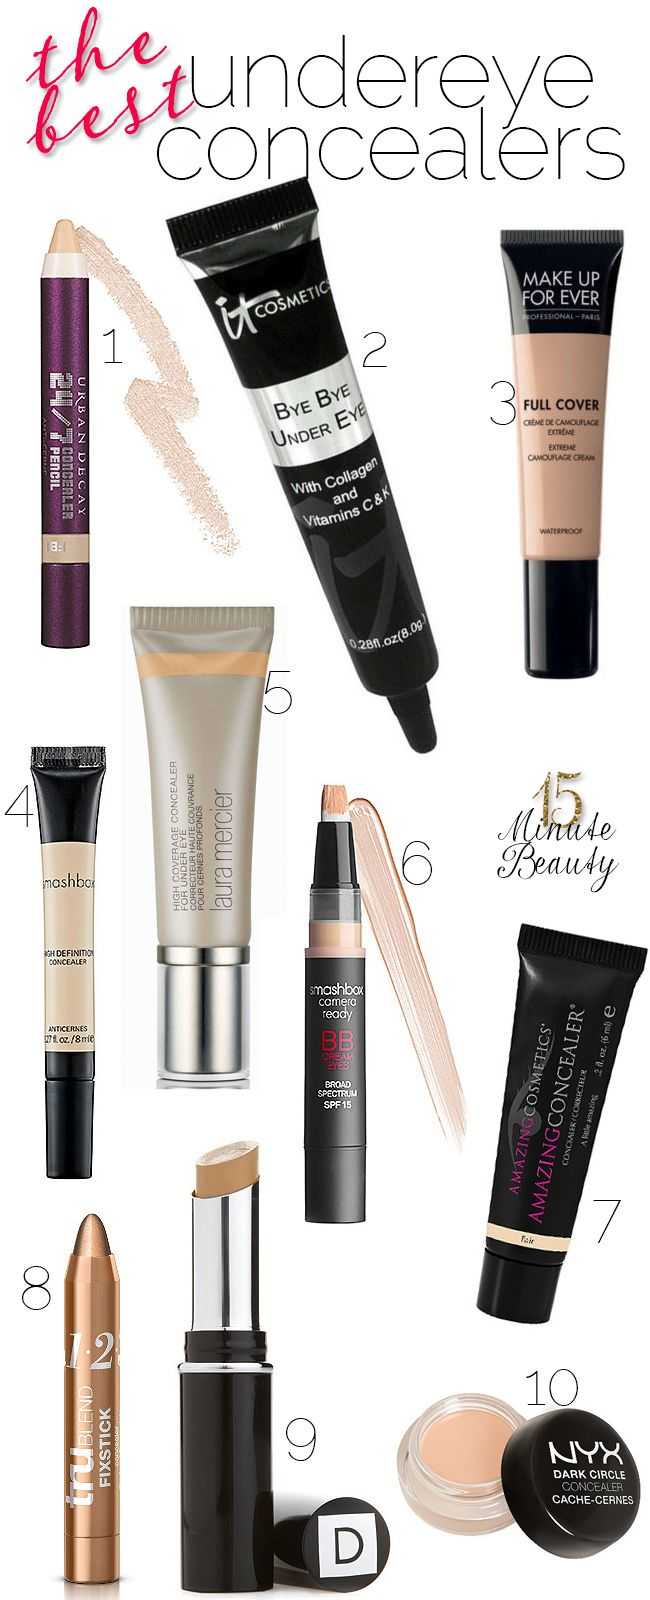 cec6c058c33 My Favorite Under Eye Concealers | Put Your Face On | Under eye ...